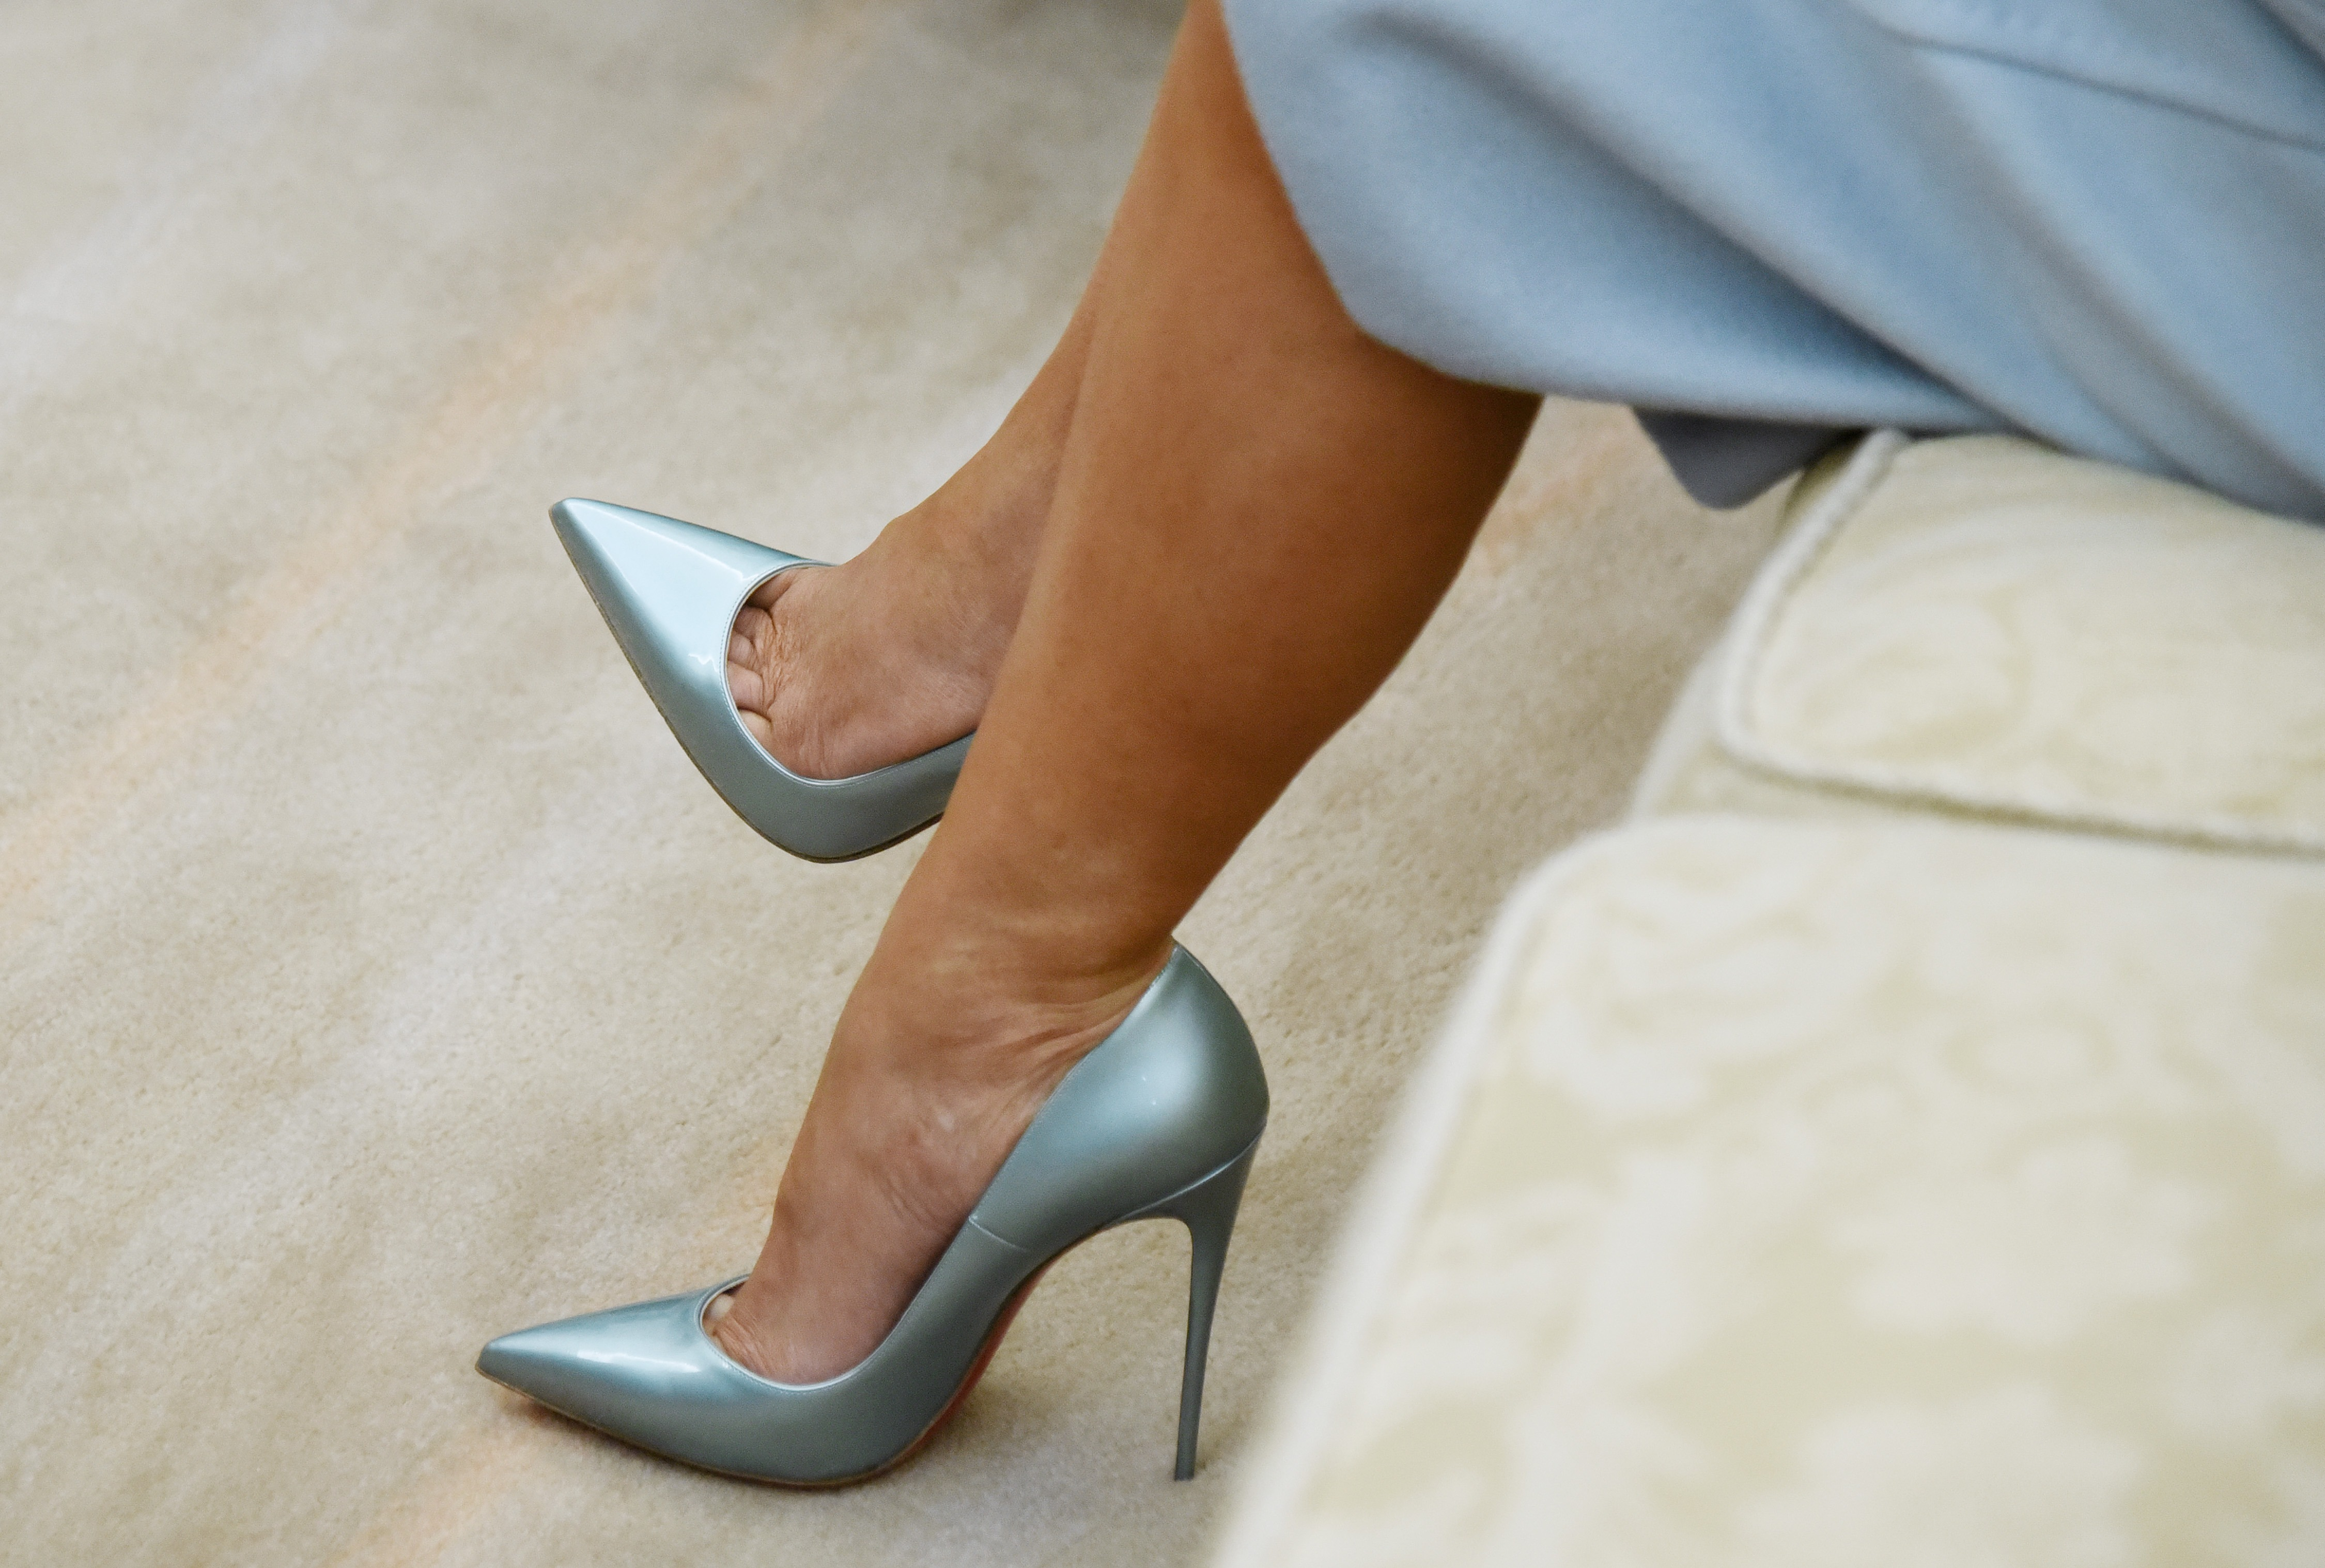 WASHINGTON, DC - MARCH 5: (AFP OUT) A detail of the shoes of First Lady Melania Trump as she attends a meeting with U.S. President Donald Trump and Israel Prime Minister Benjamin Netanyahu in the Oval Office of the White House  March 5, 2018 in Washington, DC. The prime minister is on an official visit to the US until the end of the week. (Photo by Olivier Douliery-Pool/Getty Images)